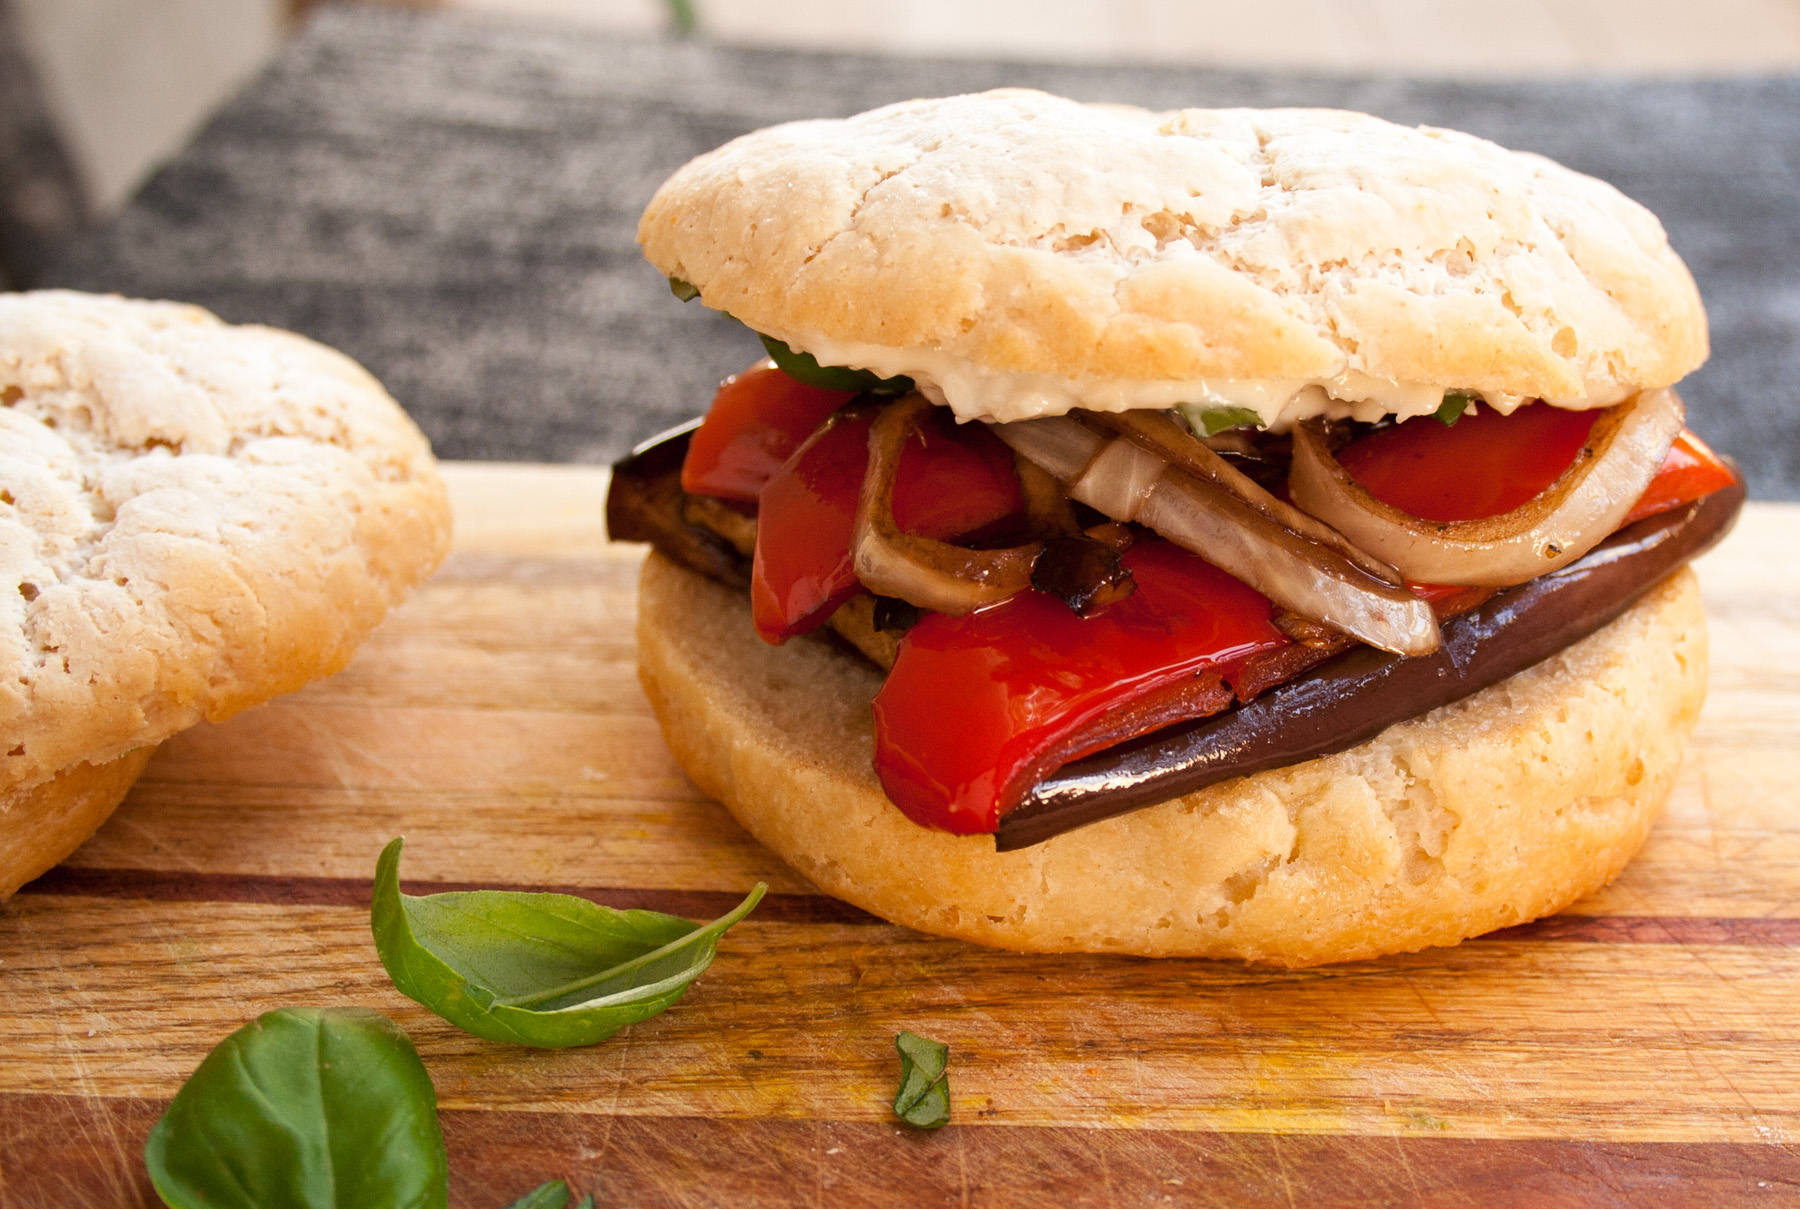 Balsamic Roasted Vegetable Sandwich close up.